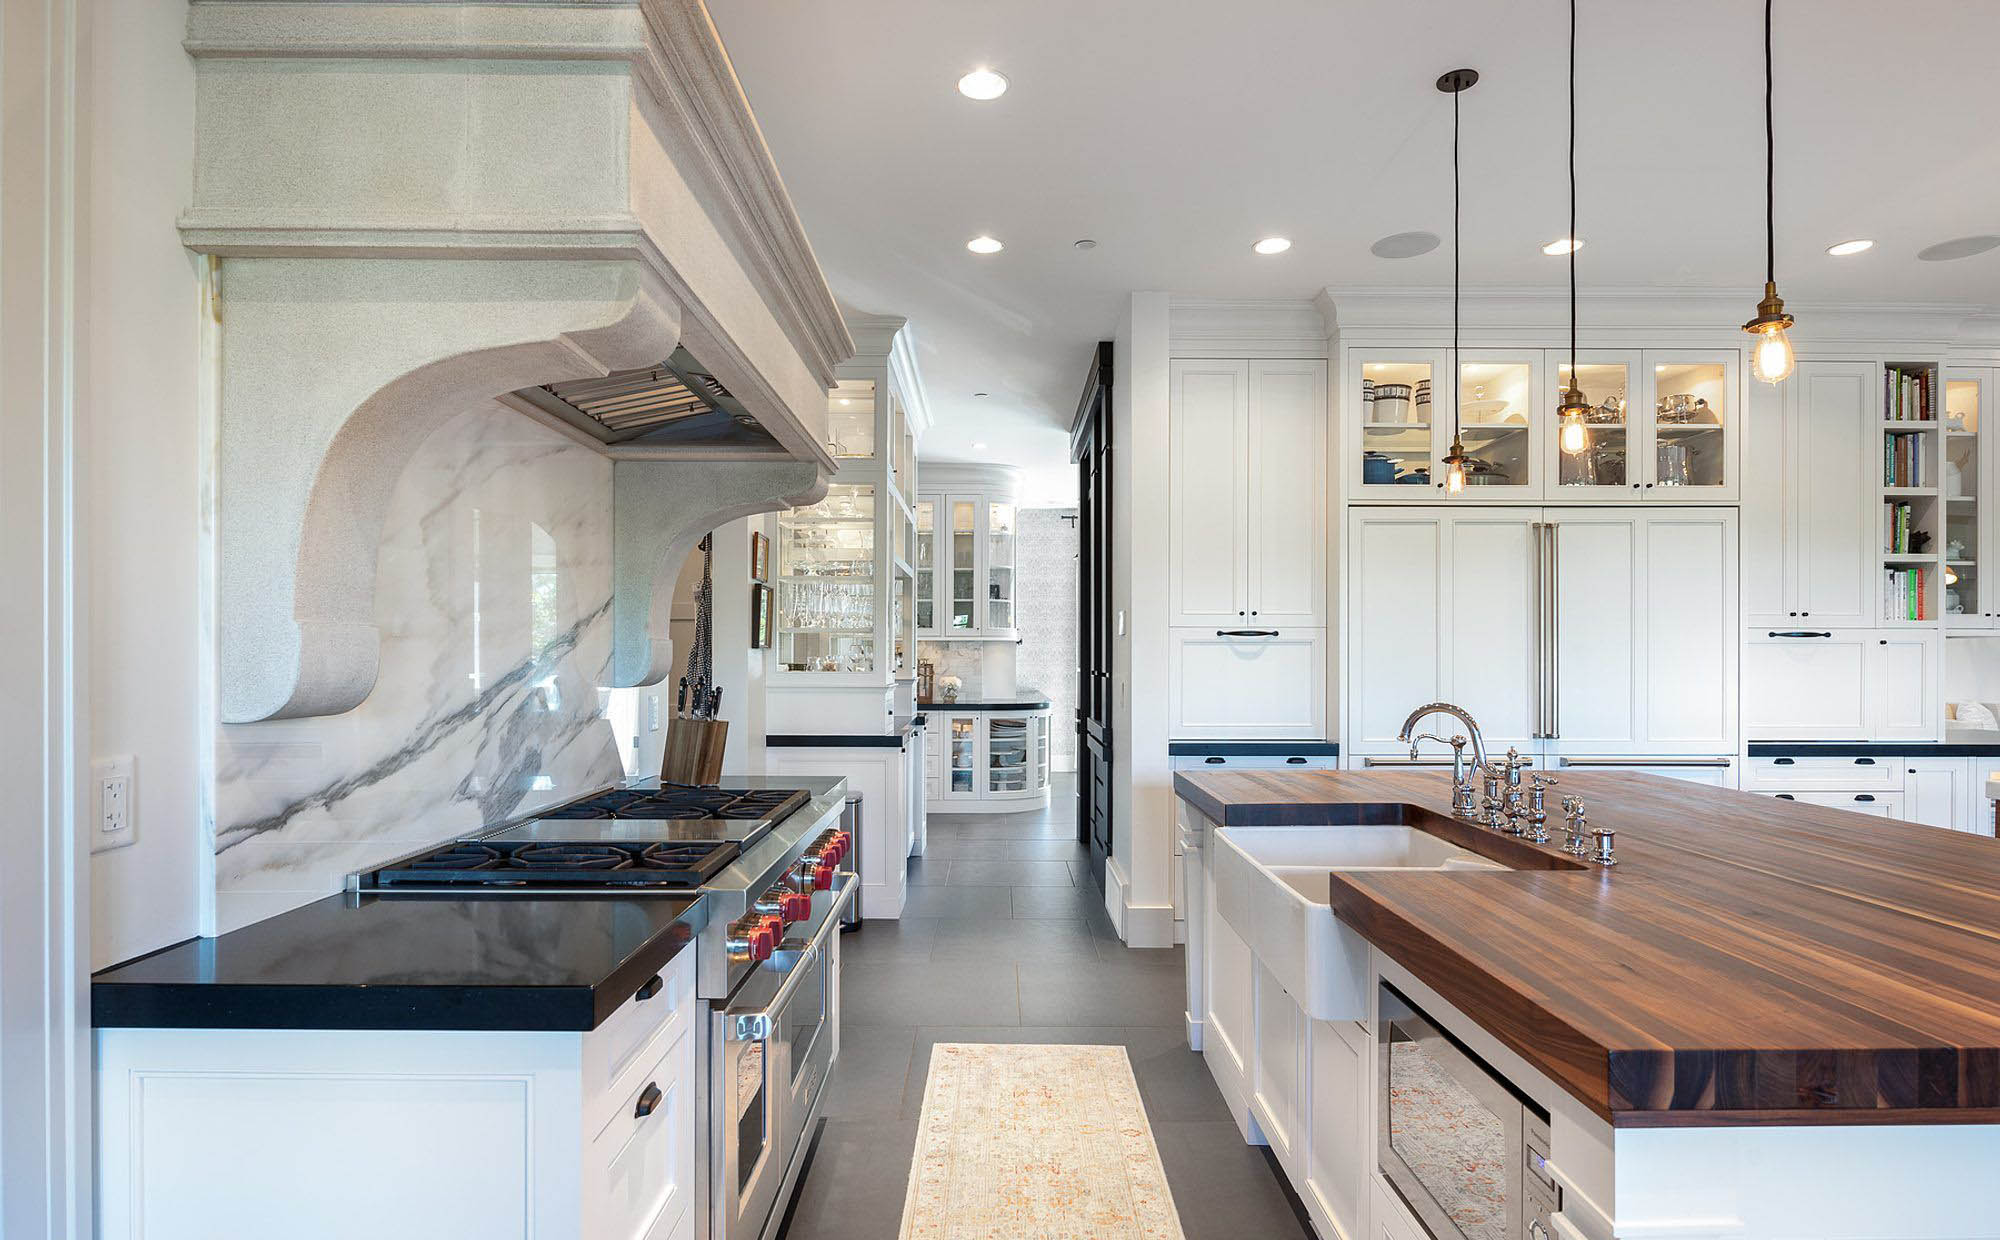 luxury kitchen design with a solid slab backsplash, butcher block countertops white farmhouse sink, and built in refrigerator.